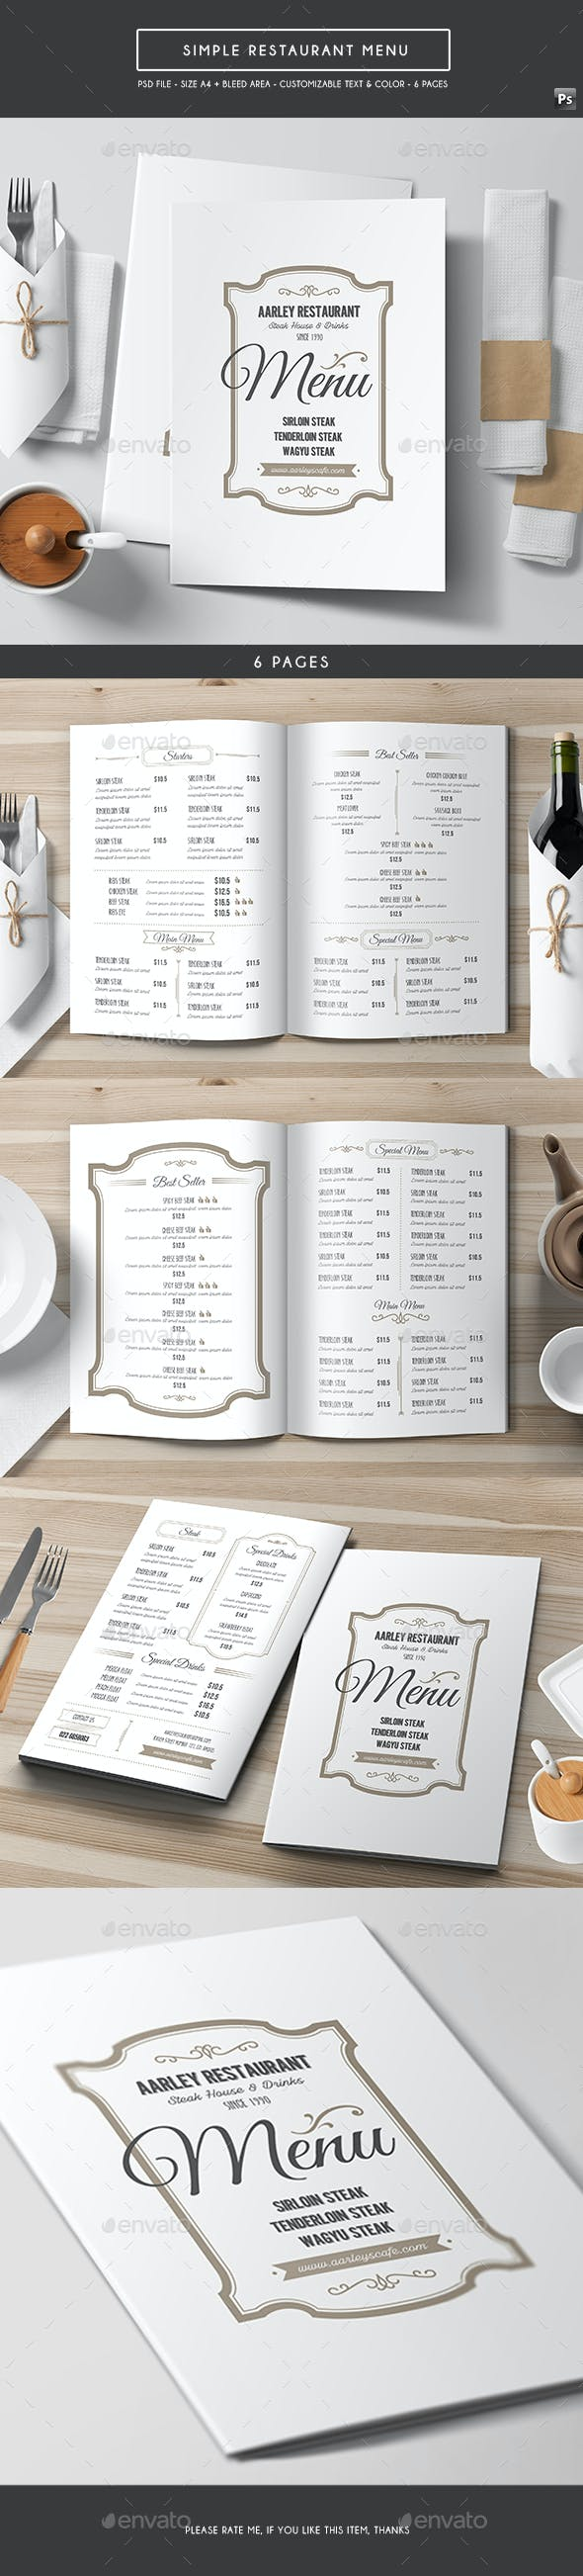 simple restaurant menu by arifpoernomo graphicriver